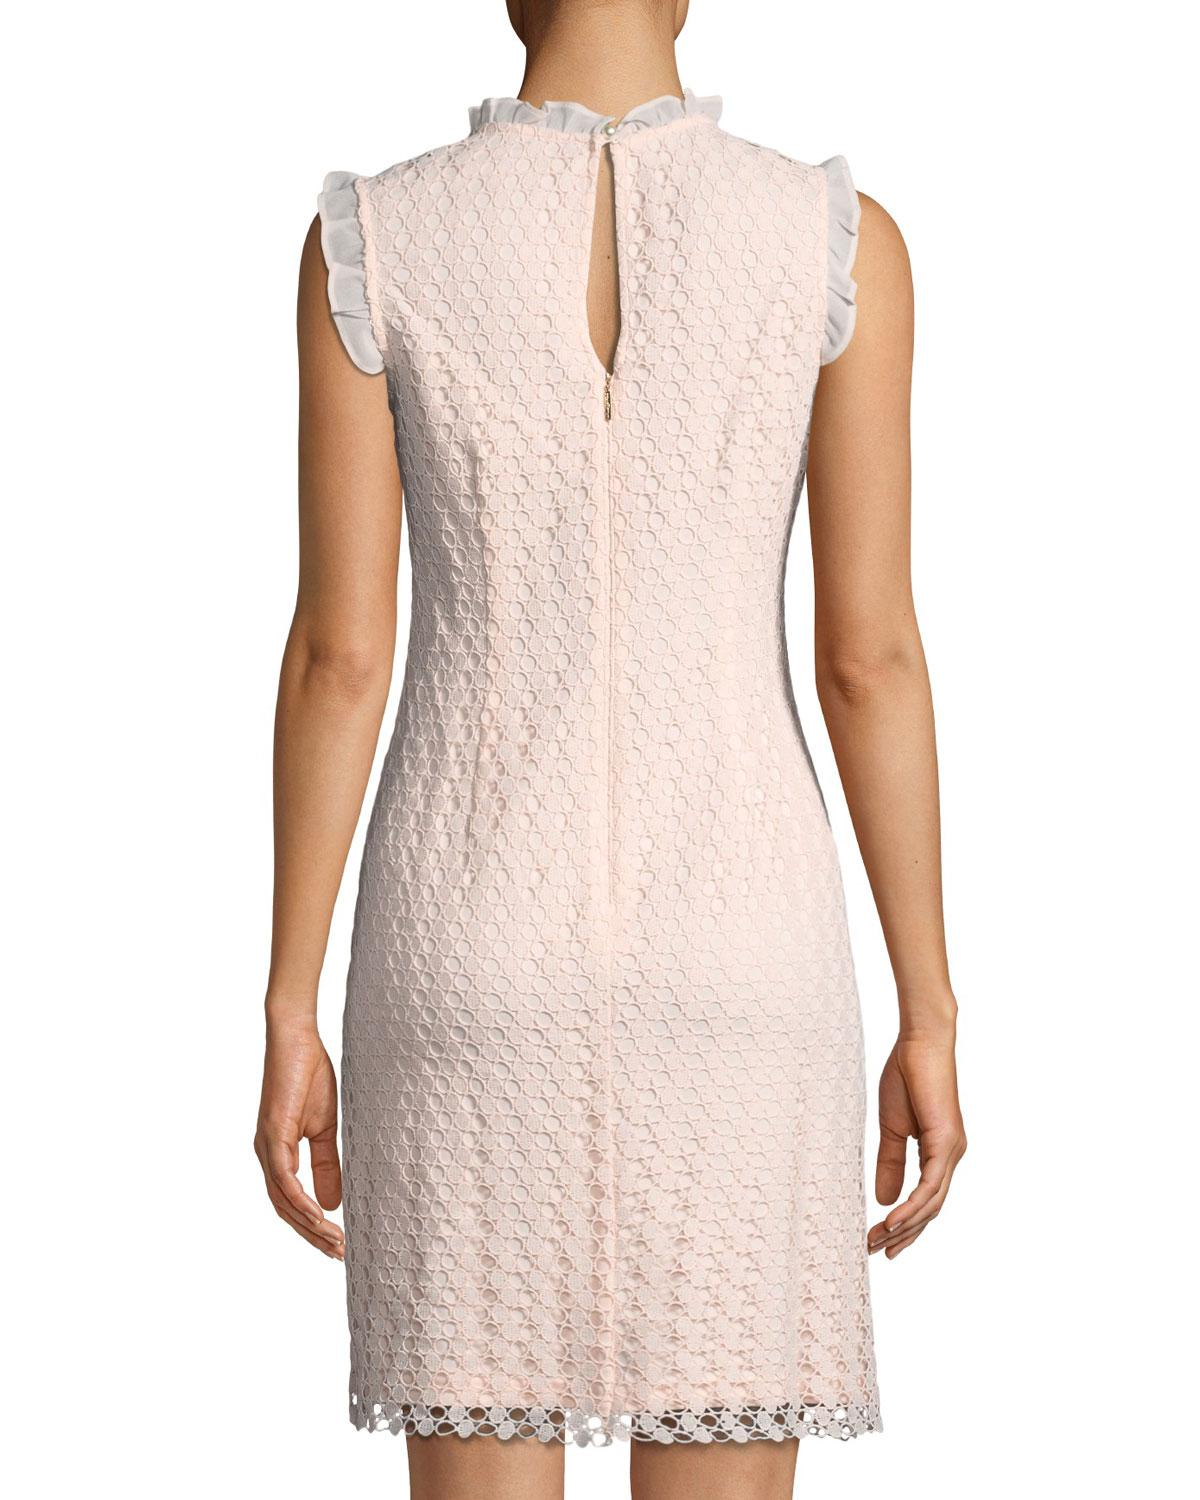 08c701f5 Lyst - Karl Lagerfeld Circle-lace Ruffle-trimmed Dress in Pink